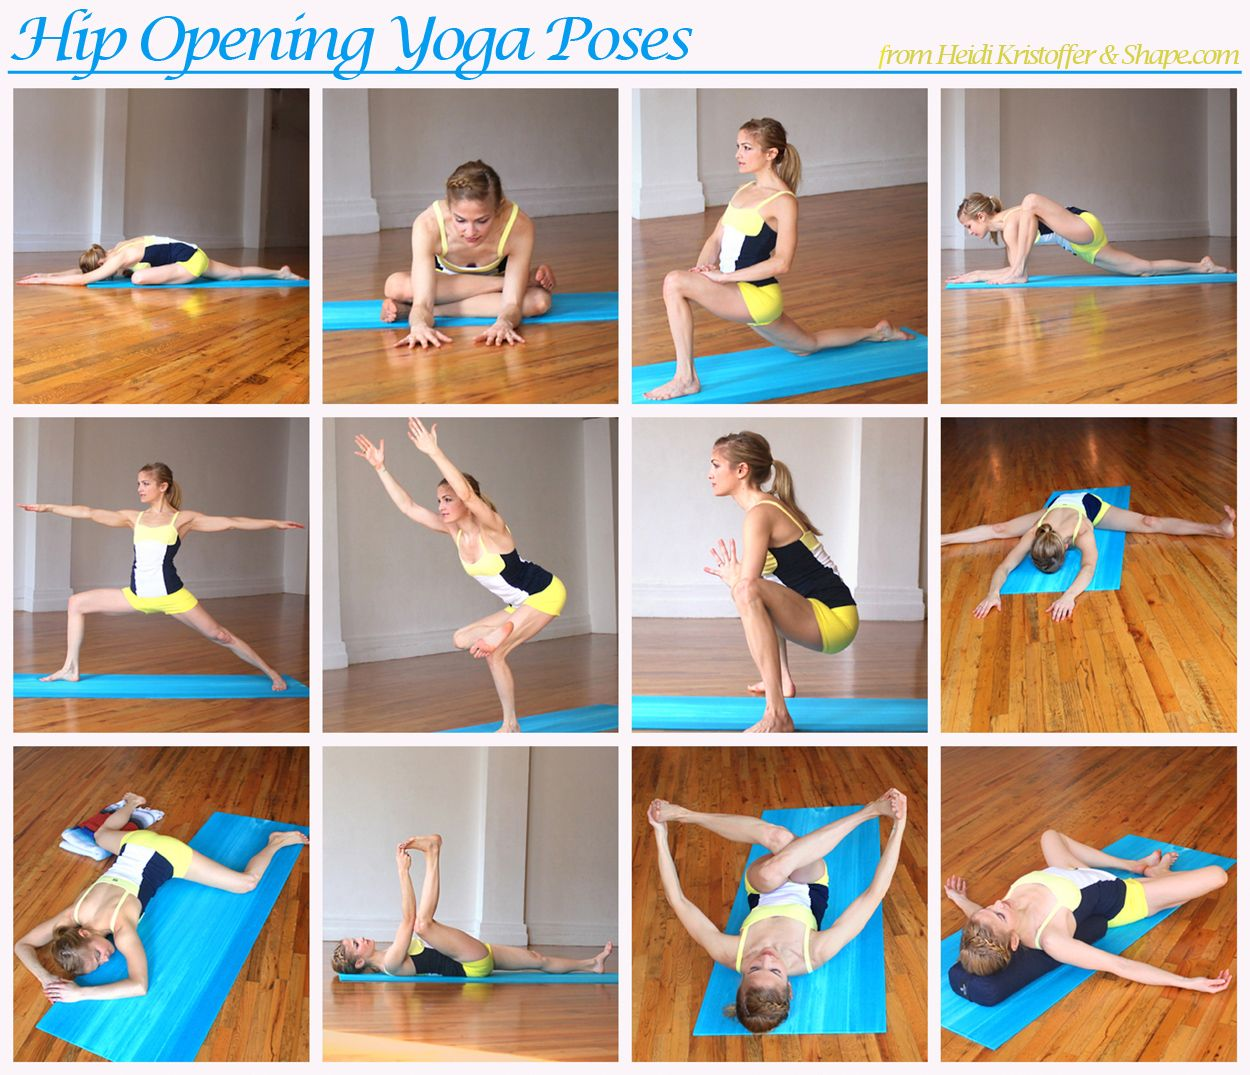 Here are 12 yoga poses to help open your hips. Pick any five of these openers each day, switching them up each time. Hold each pose for about 30 seconds each, take deep breaths, and you will start to feel more open.